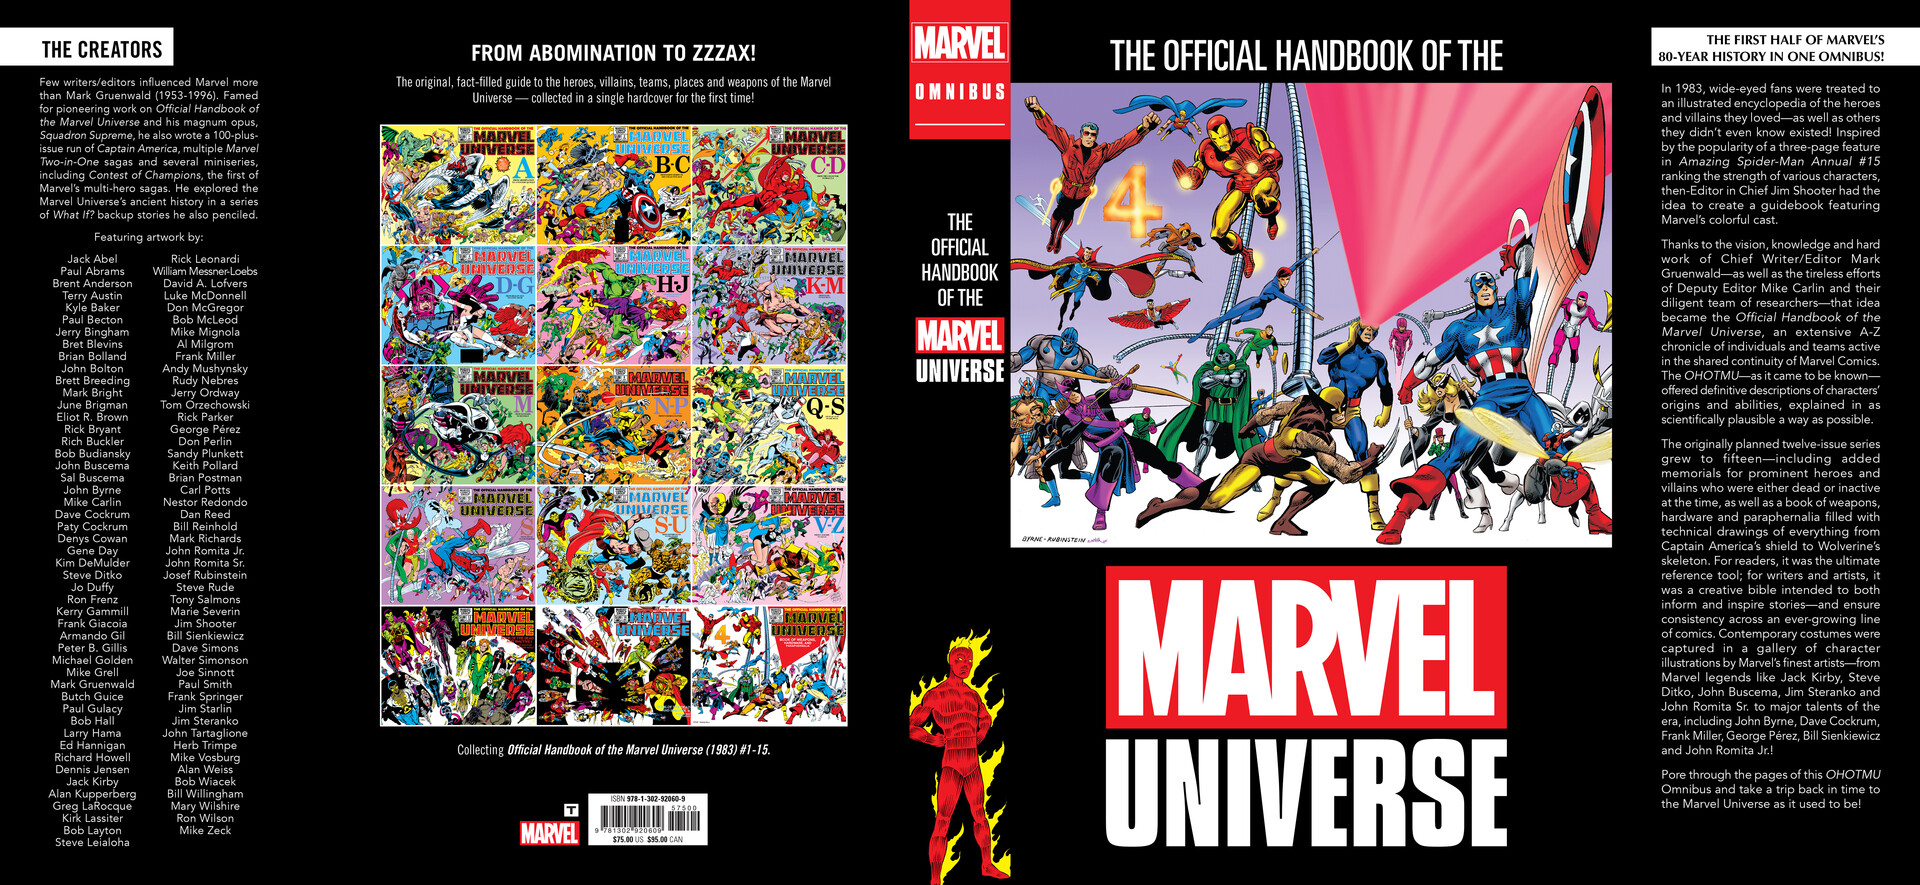 The Official Handbook of the Marvel Universe Complete Cover Design